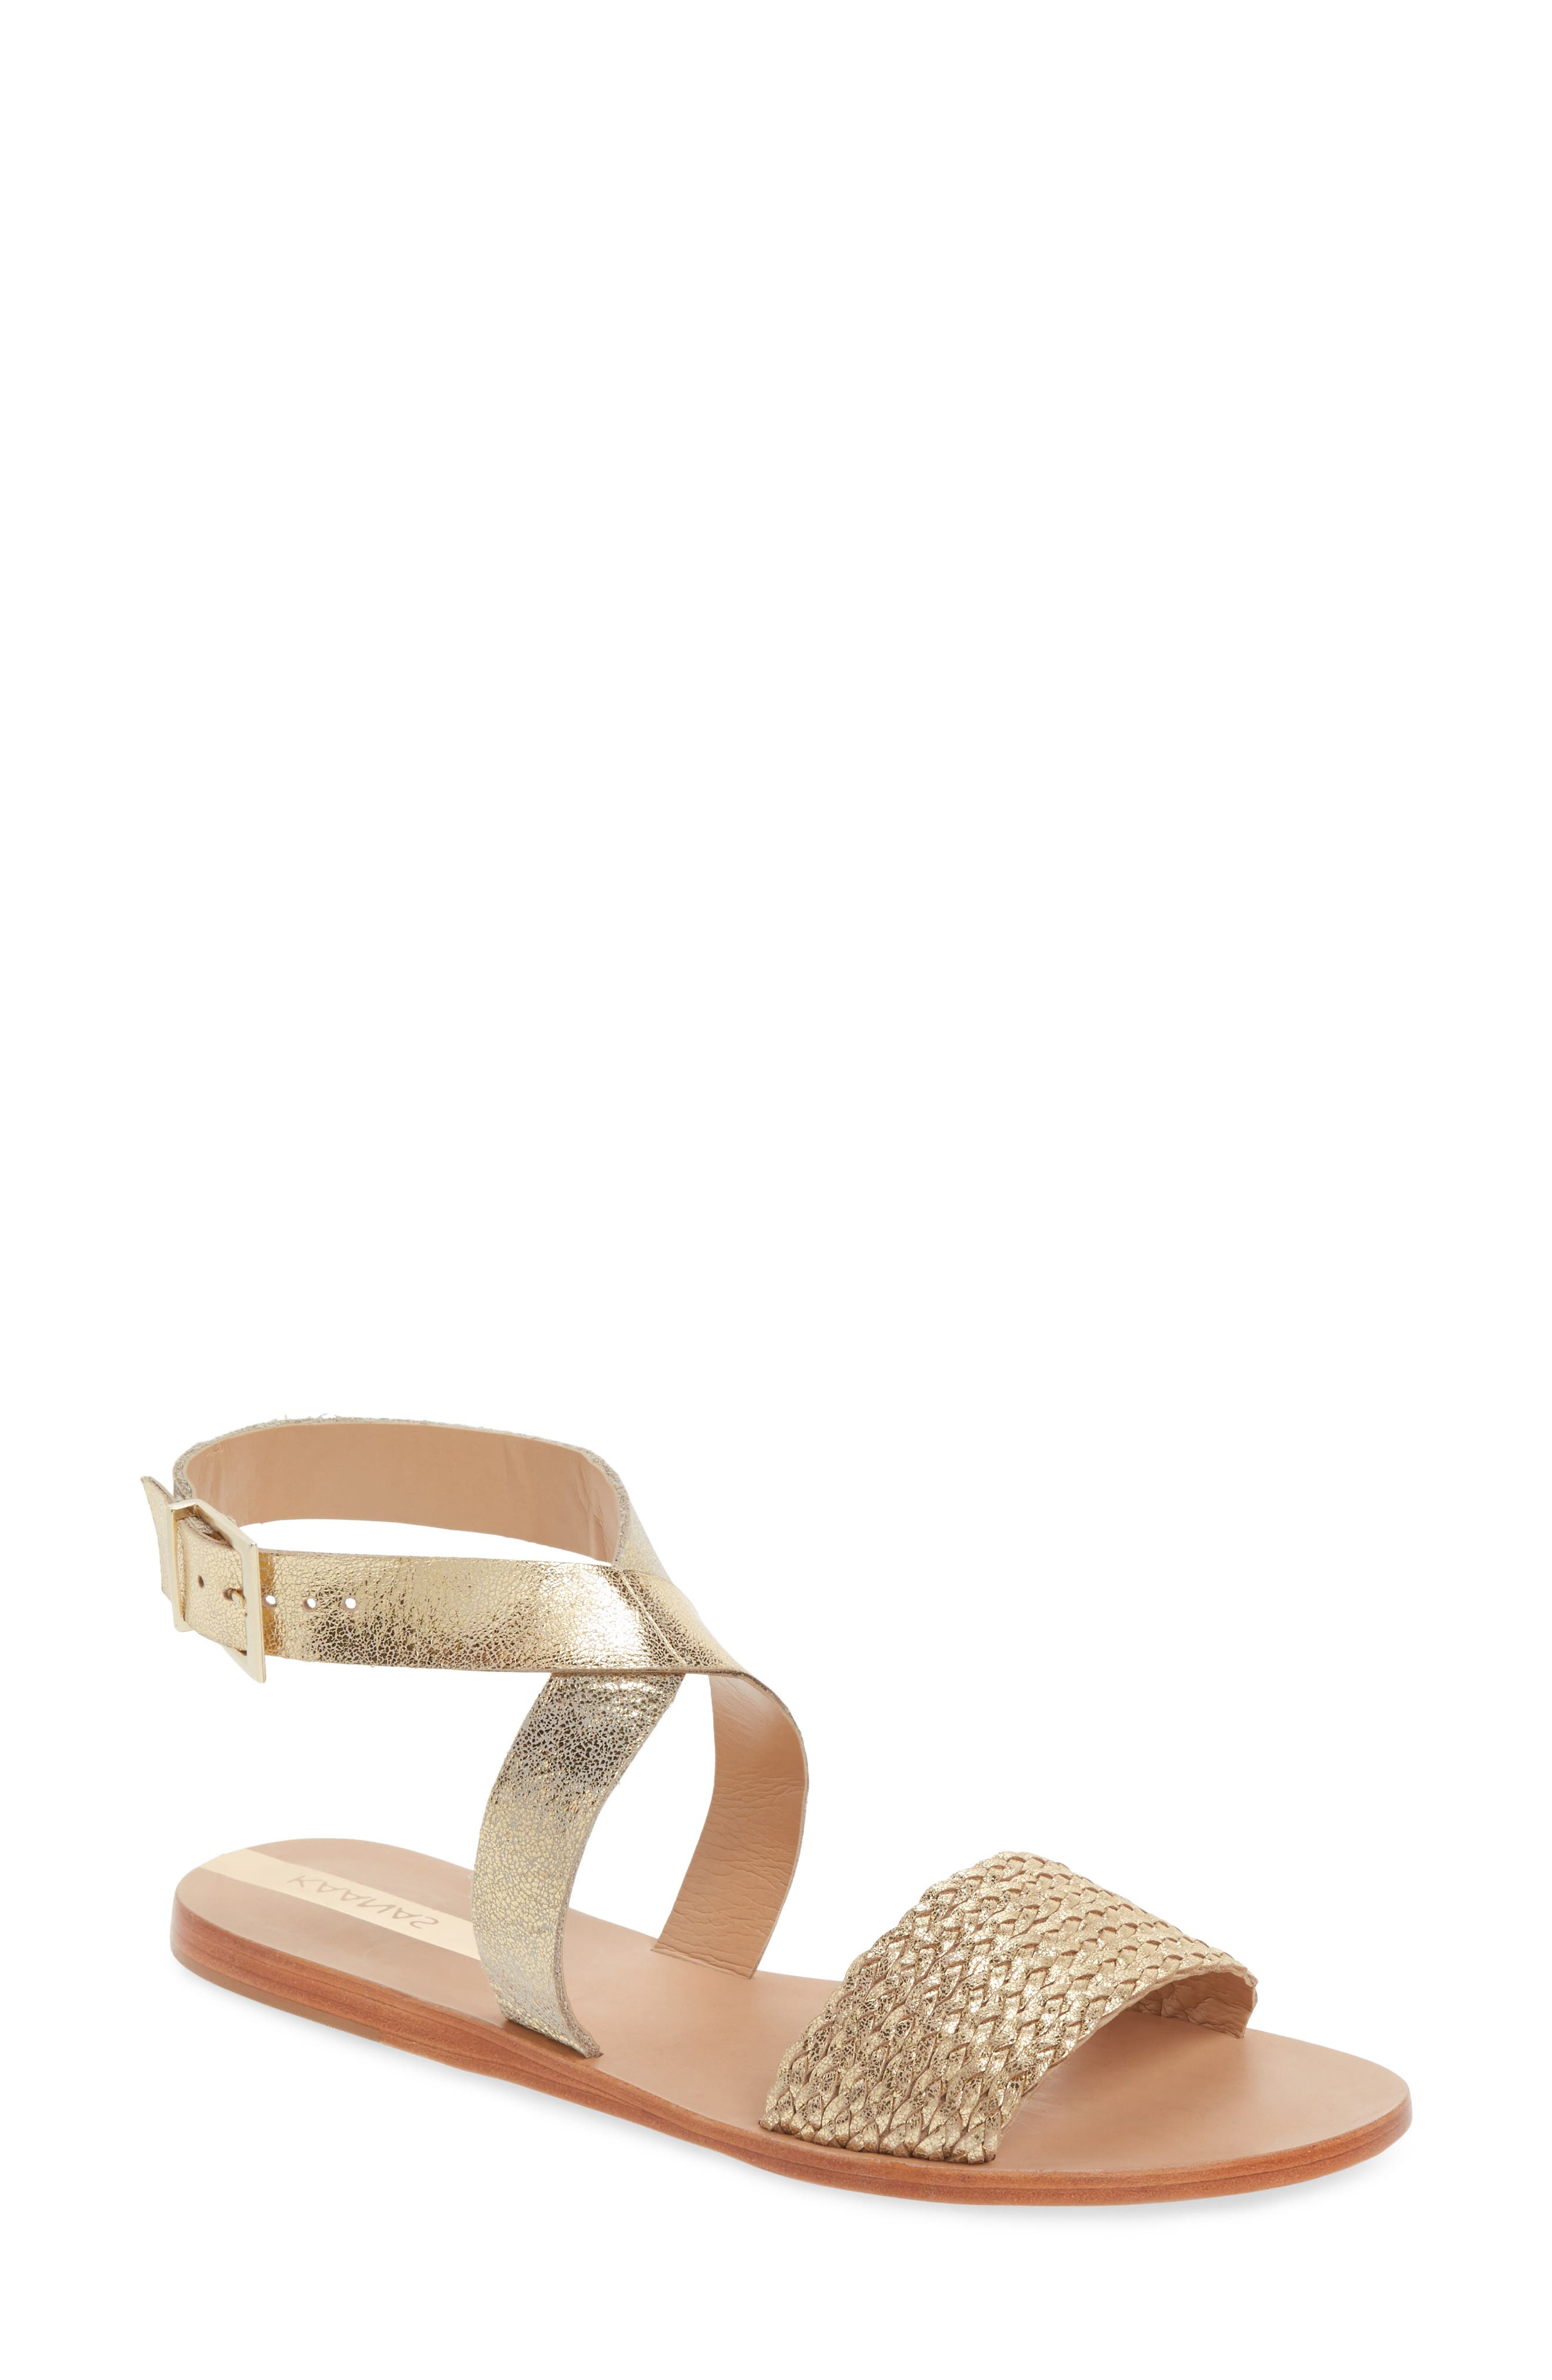 Fortaleza Braided Flat Sandal,                         Main,                         color, Gold